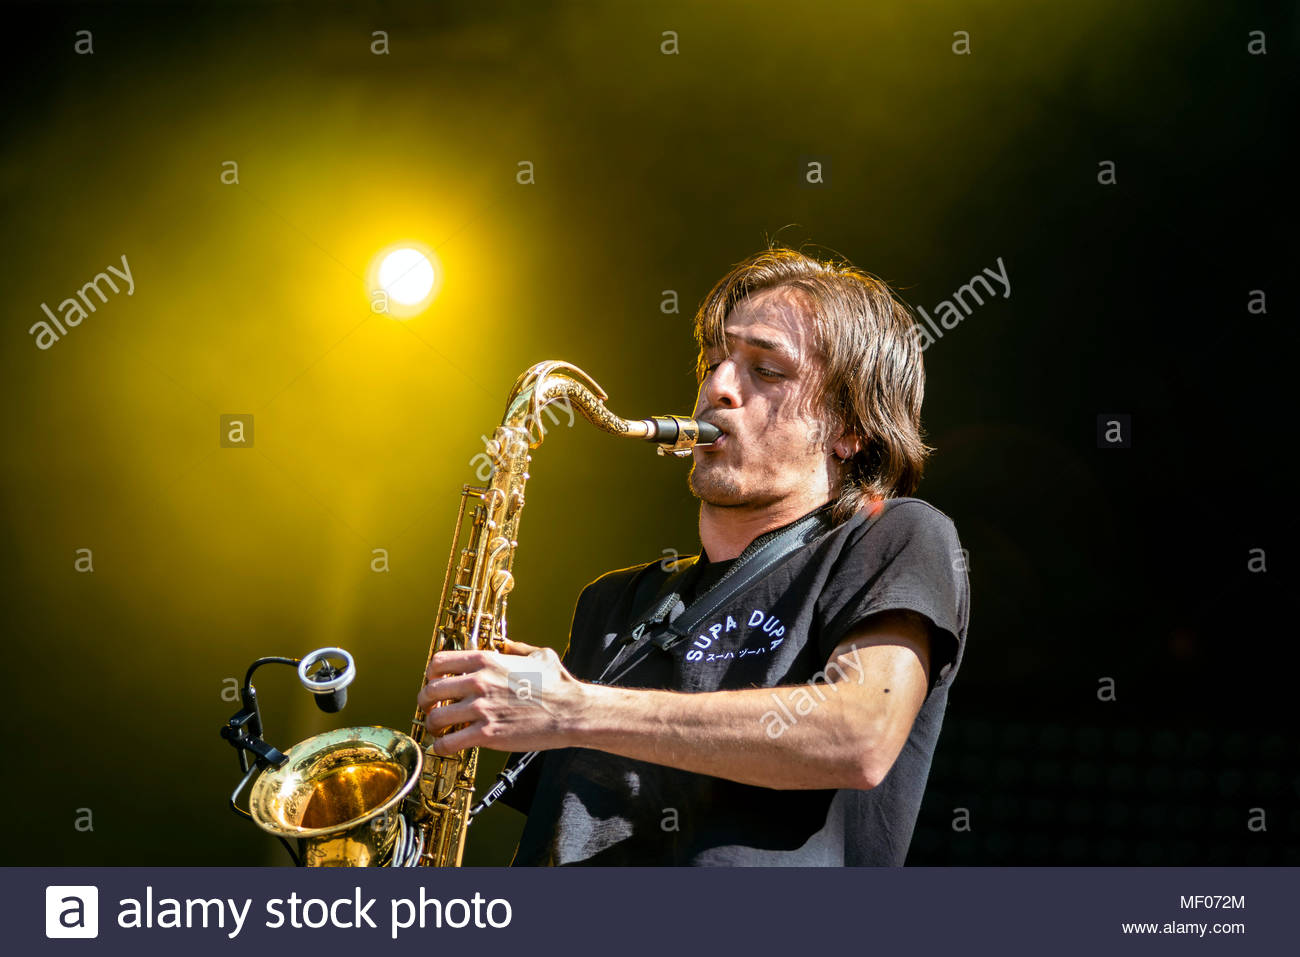 Supa Dupa performing live at the first edition of MUSILAC Mont-Blanc music festival in Chamonix (France) - 20 April 2018 Stock Photo